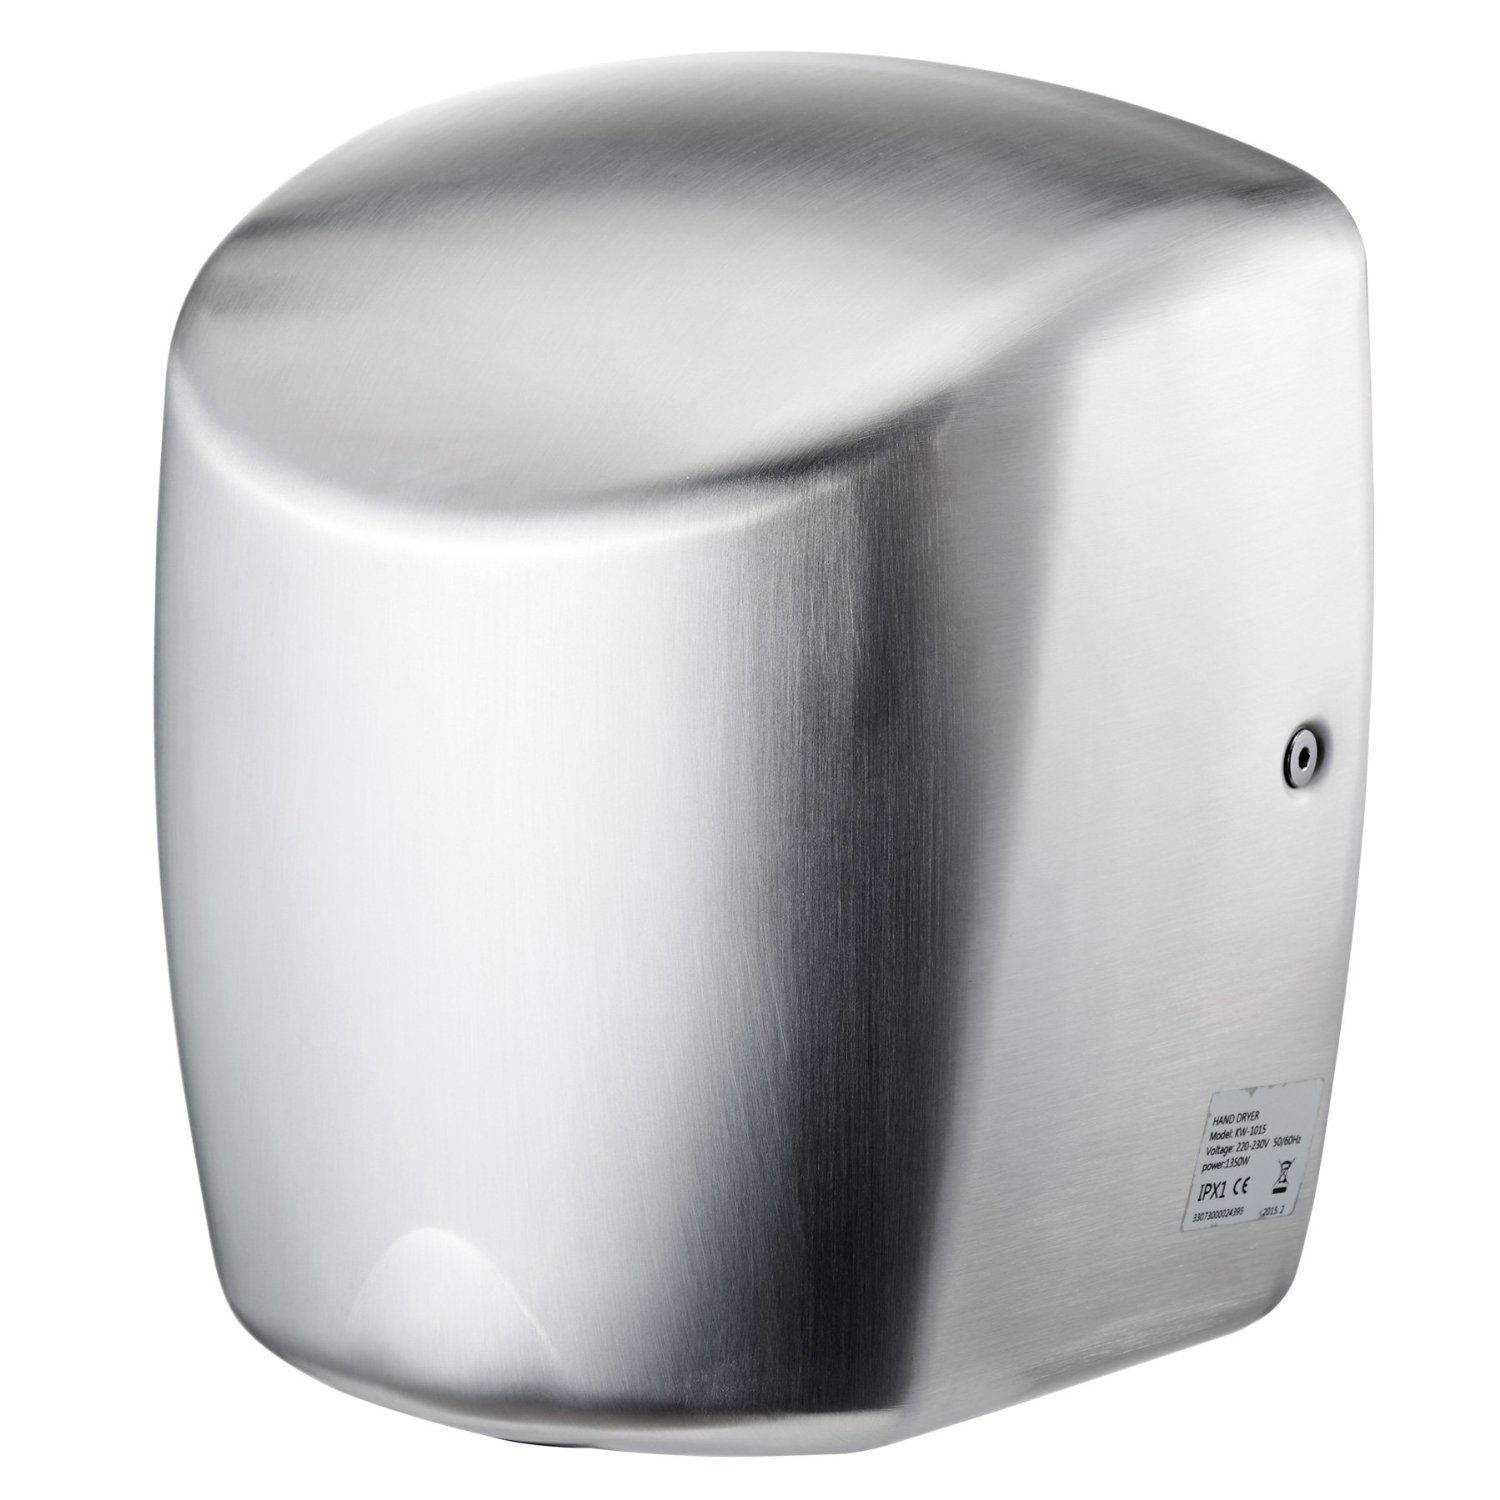 ASIALEO Electric Automatic High Speed Commercial Hand Dryer-Brushed Stainless Steel Cover,Noise Reduction Nozzle,110V/1350W,Commercial Hand dryers for Bathrooms